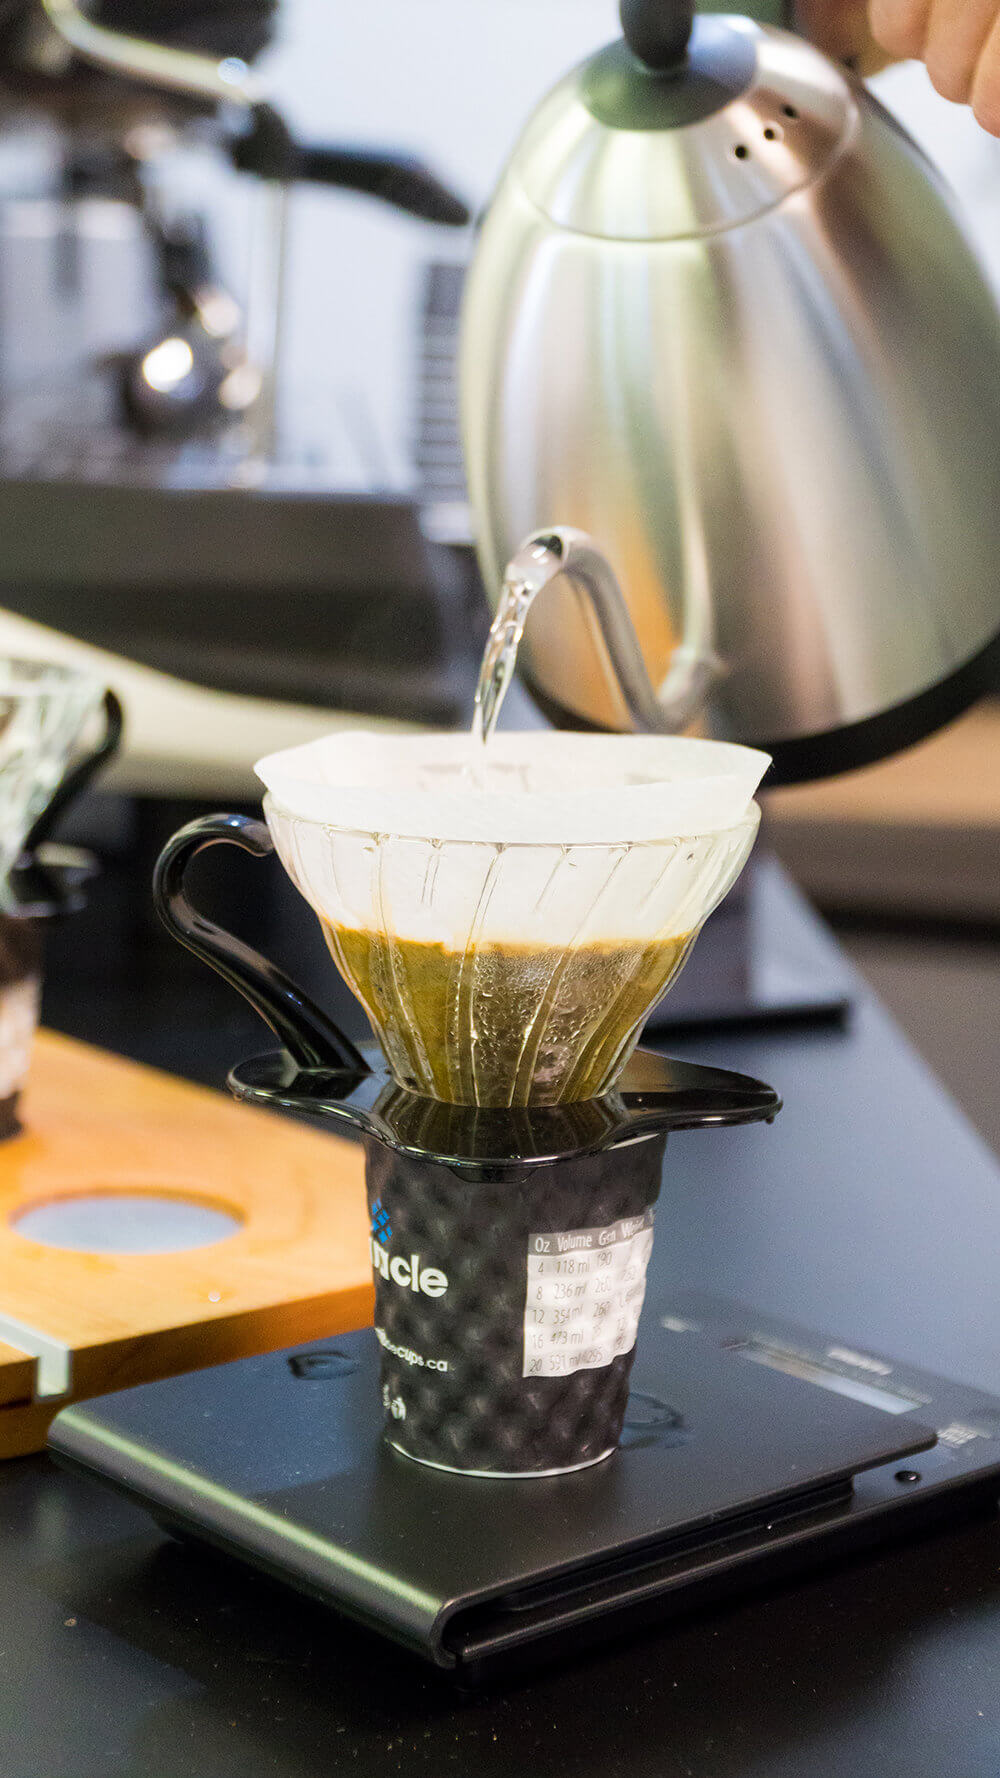 Learn how to brew coffee with the pour over method and its benefits at Roaster Central.